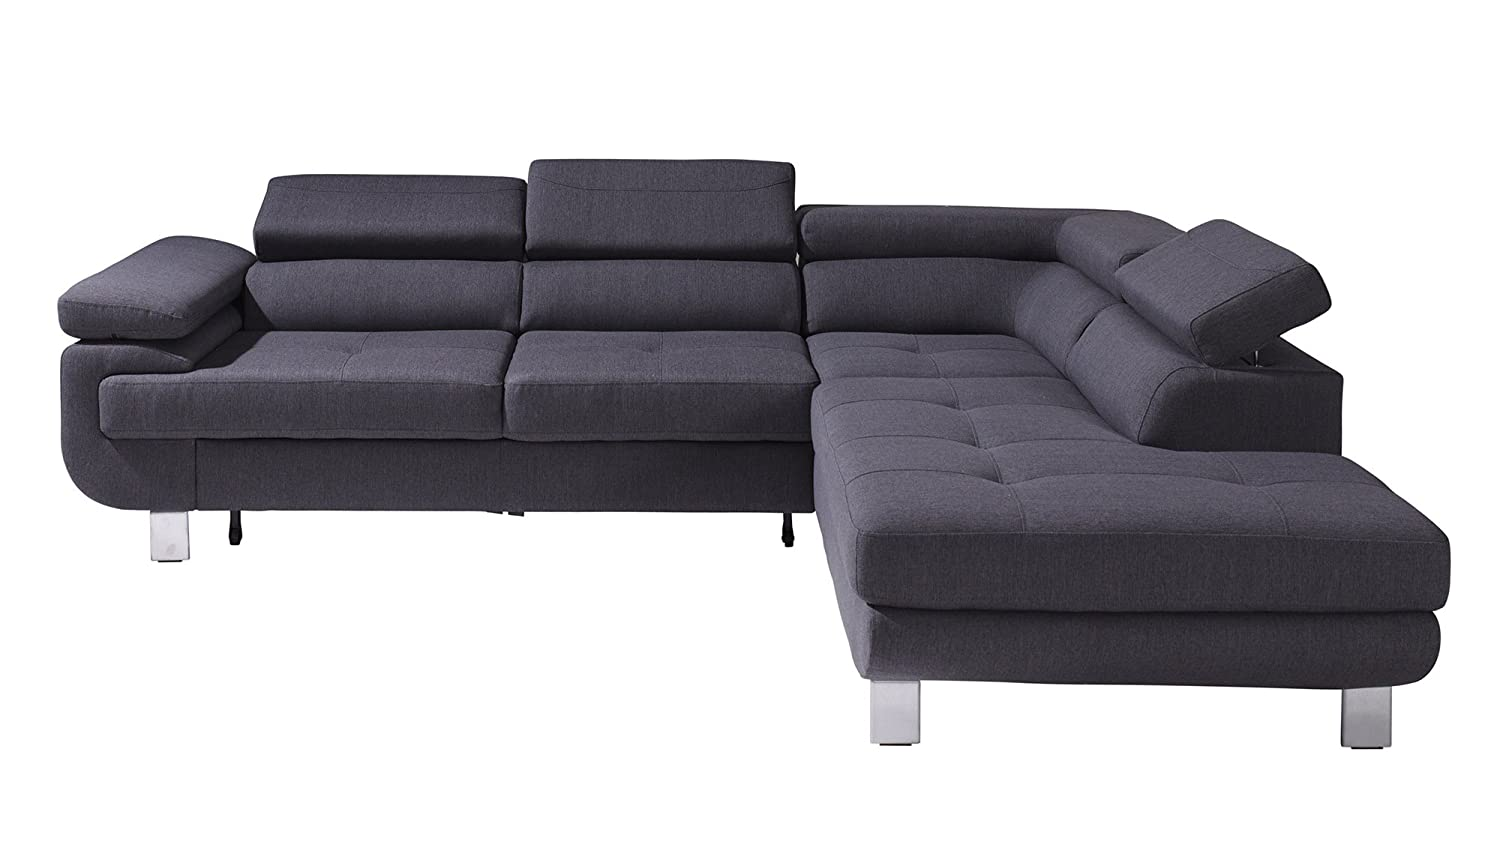 luccia grau stoff schlafsofa schlafcouch couch sofa. Black Bedroom Furniture Sets. Home Design Ideas